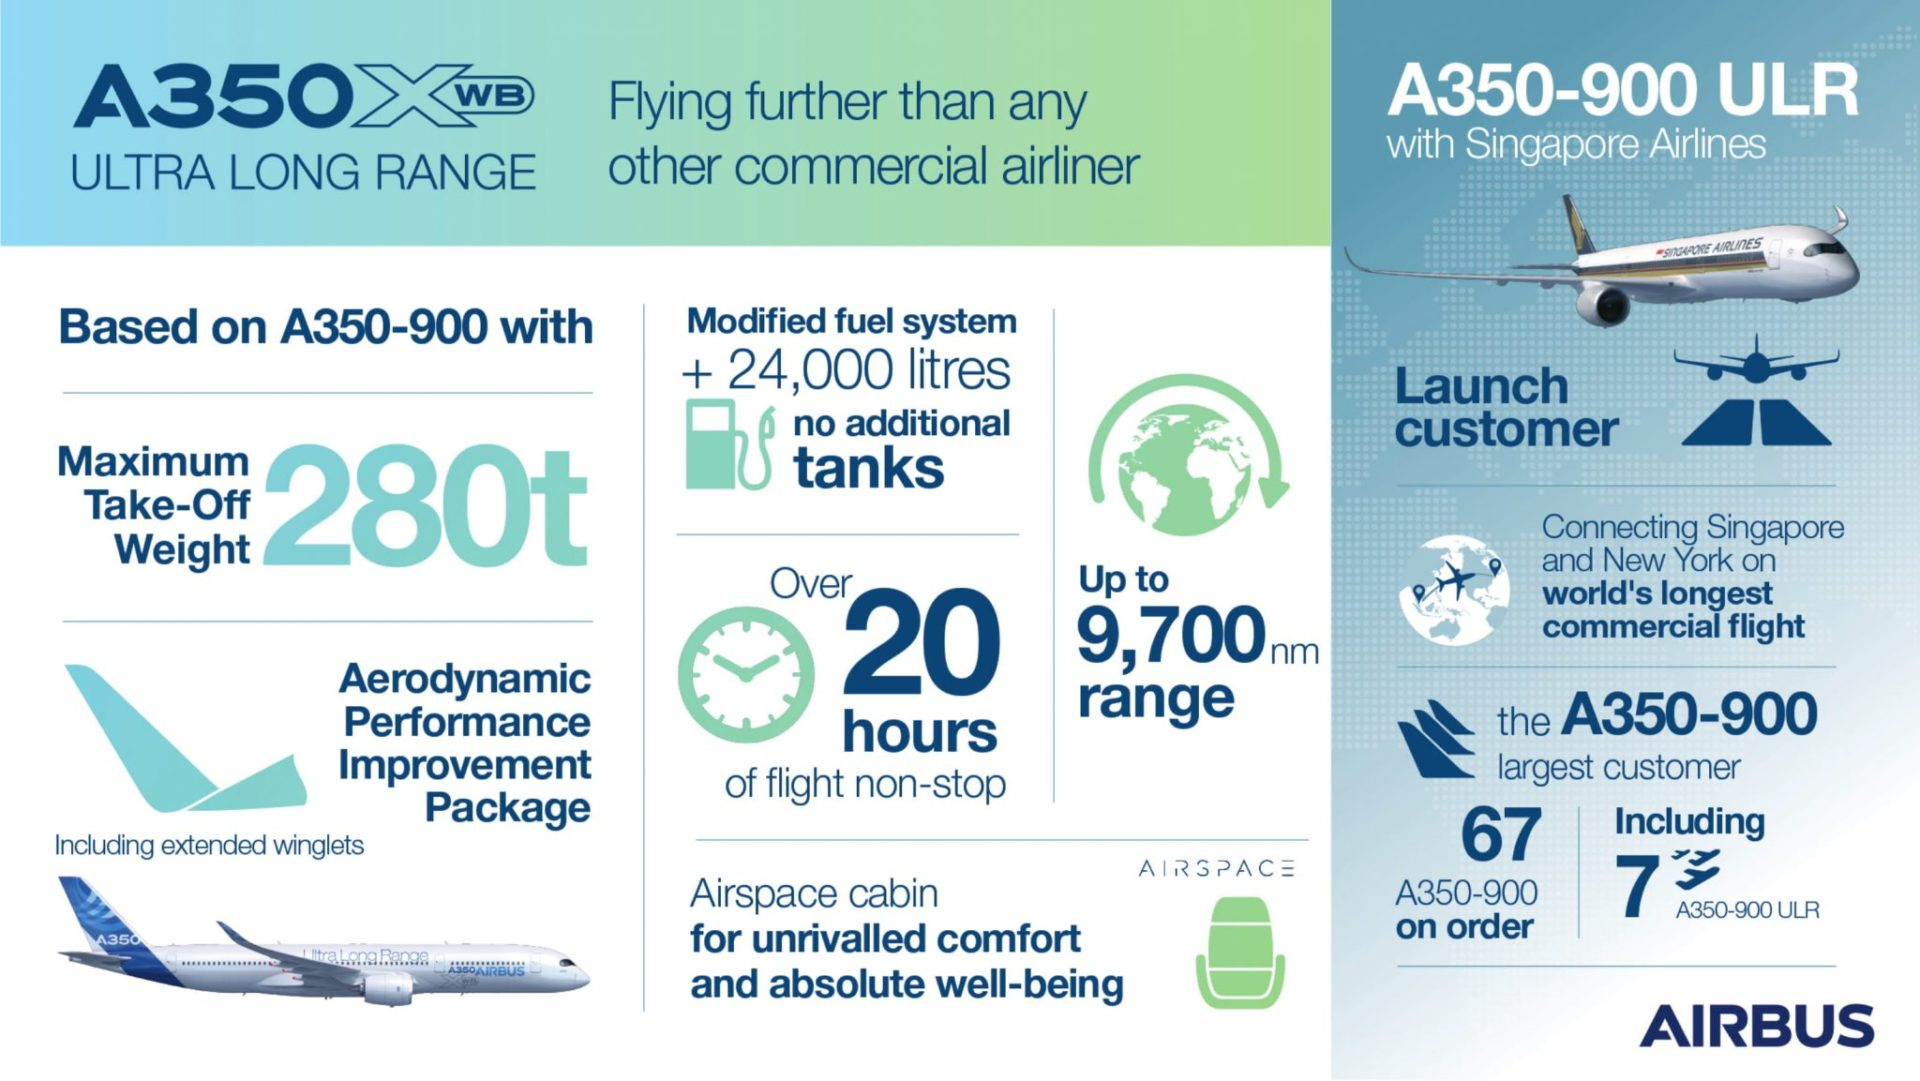 A350-900 ULR Infographic